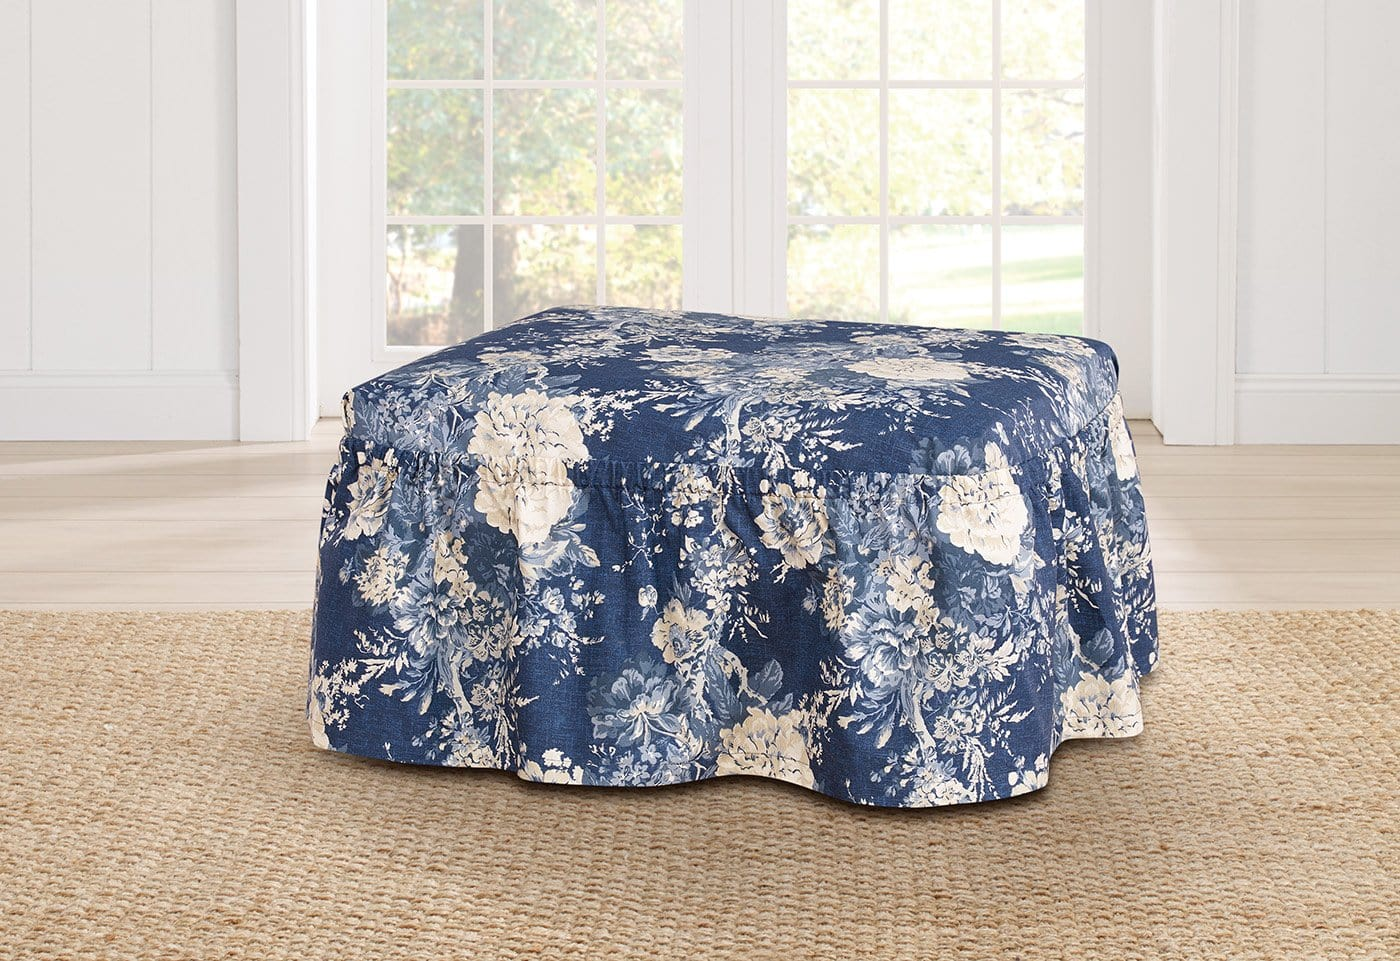 Ballad Bouquet By Waverly Two Piece Ottoman Slipcover - Final Sale